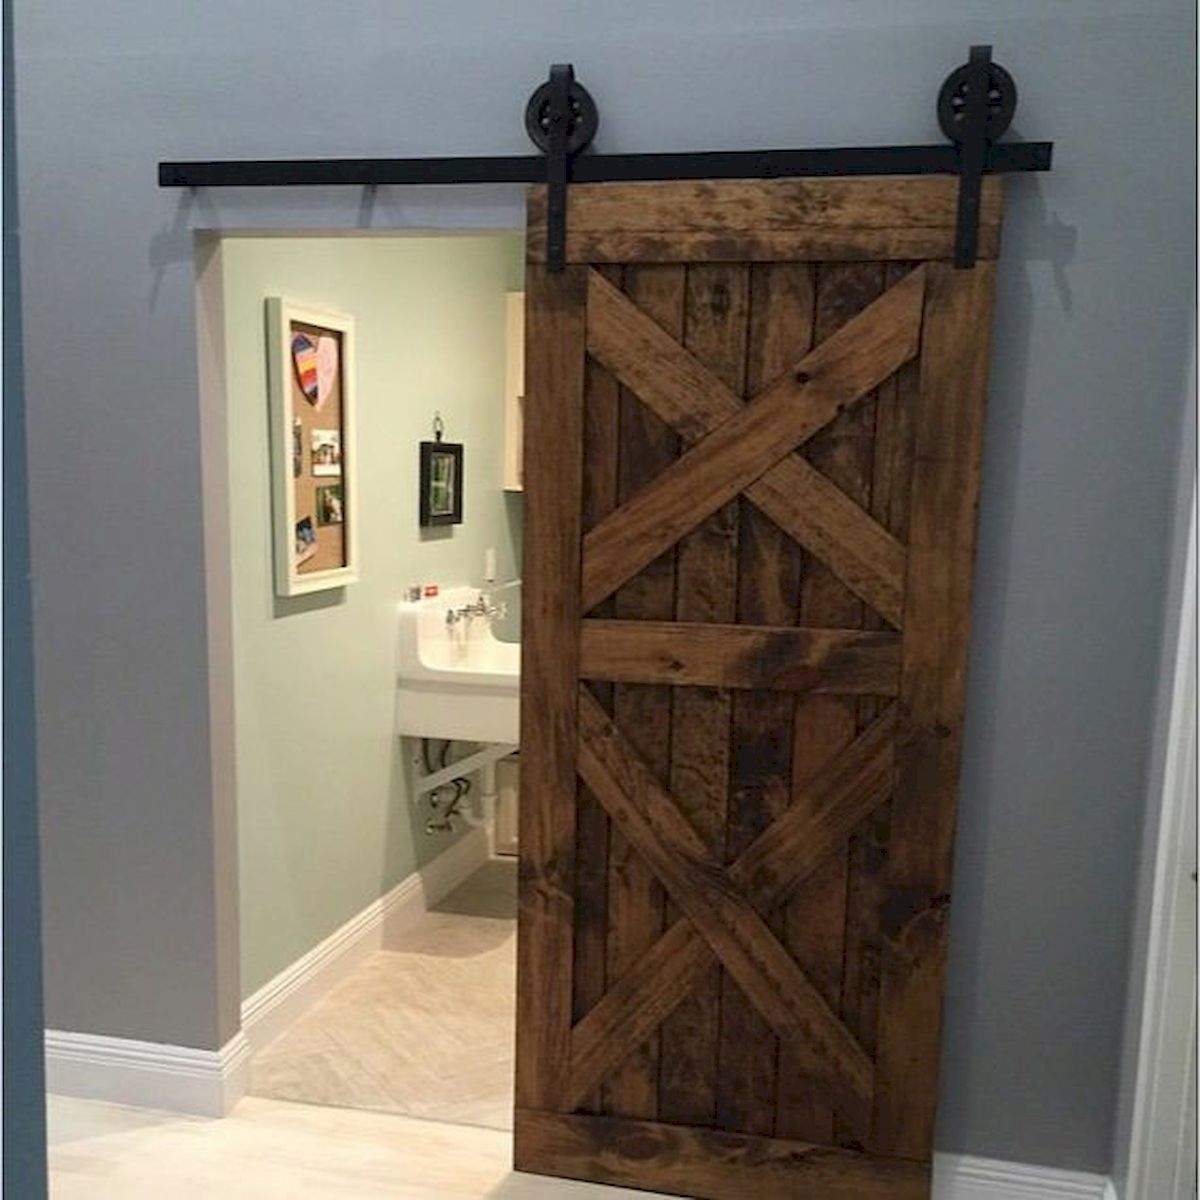 70 Rustic Home Decor Ideas for Doors and Windows (66)